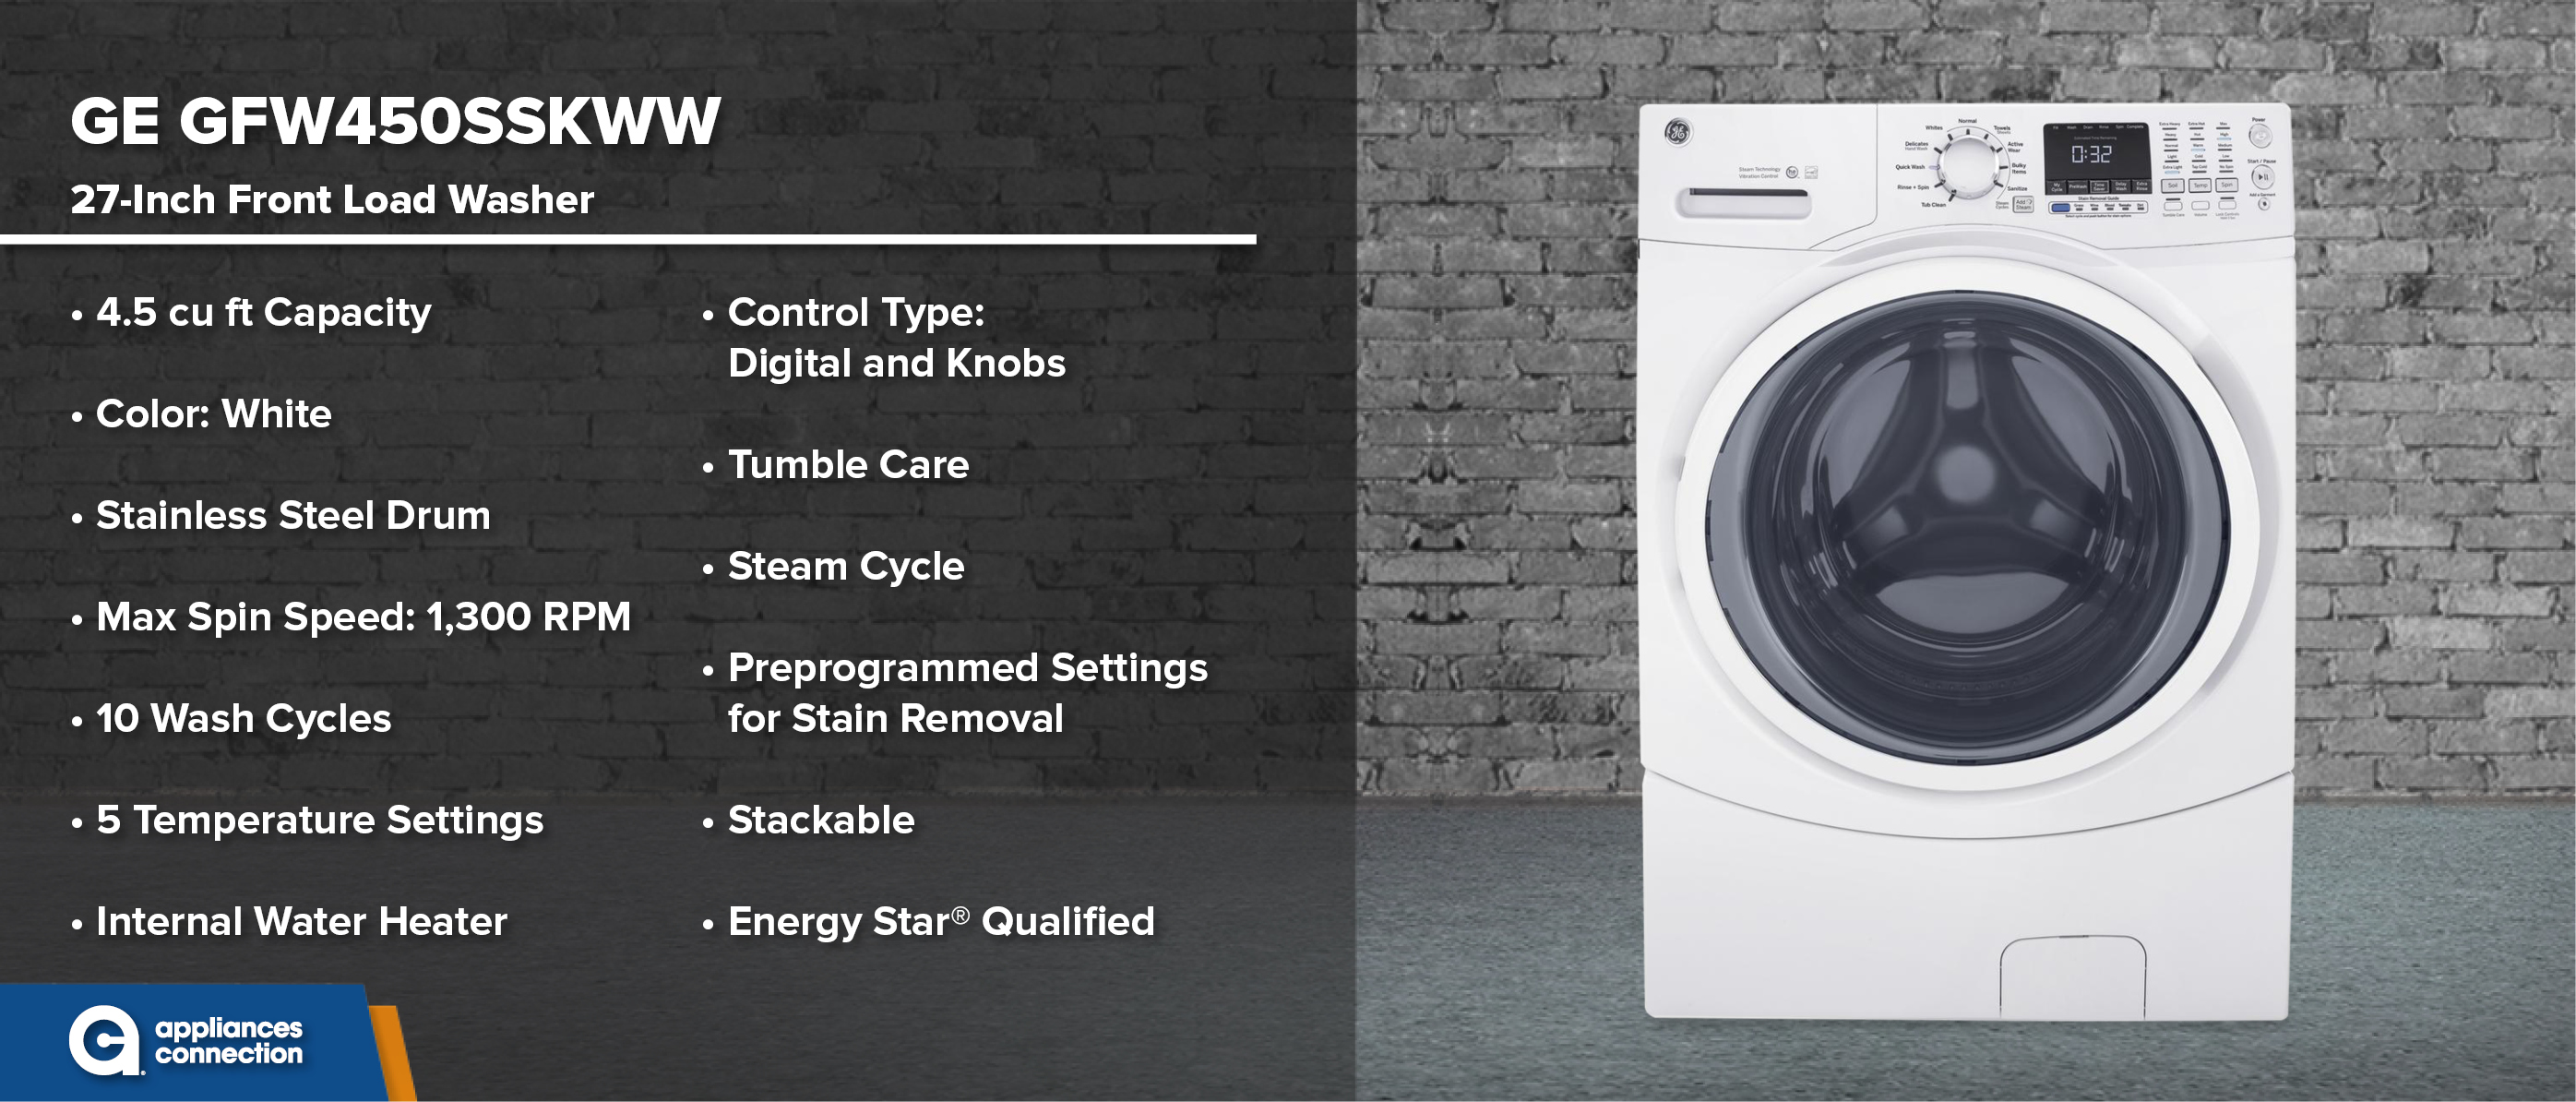 GE GFW450SSKWW 27-Inch Front Load Washer